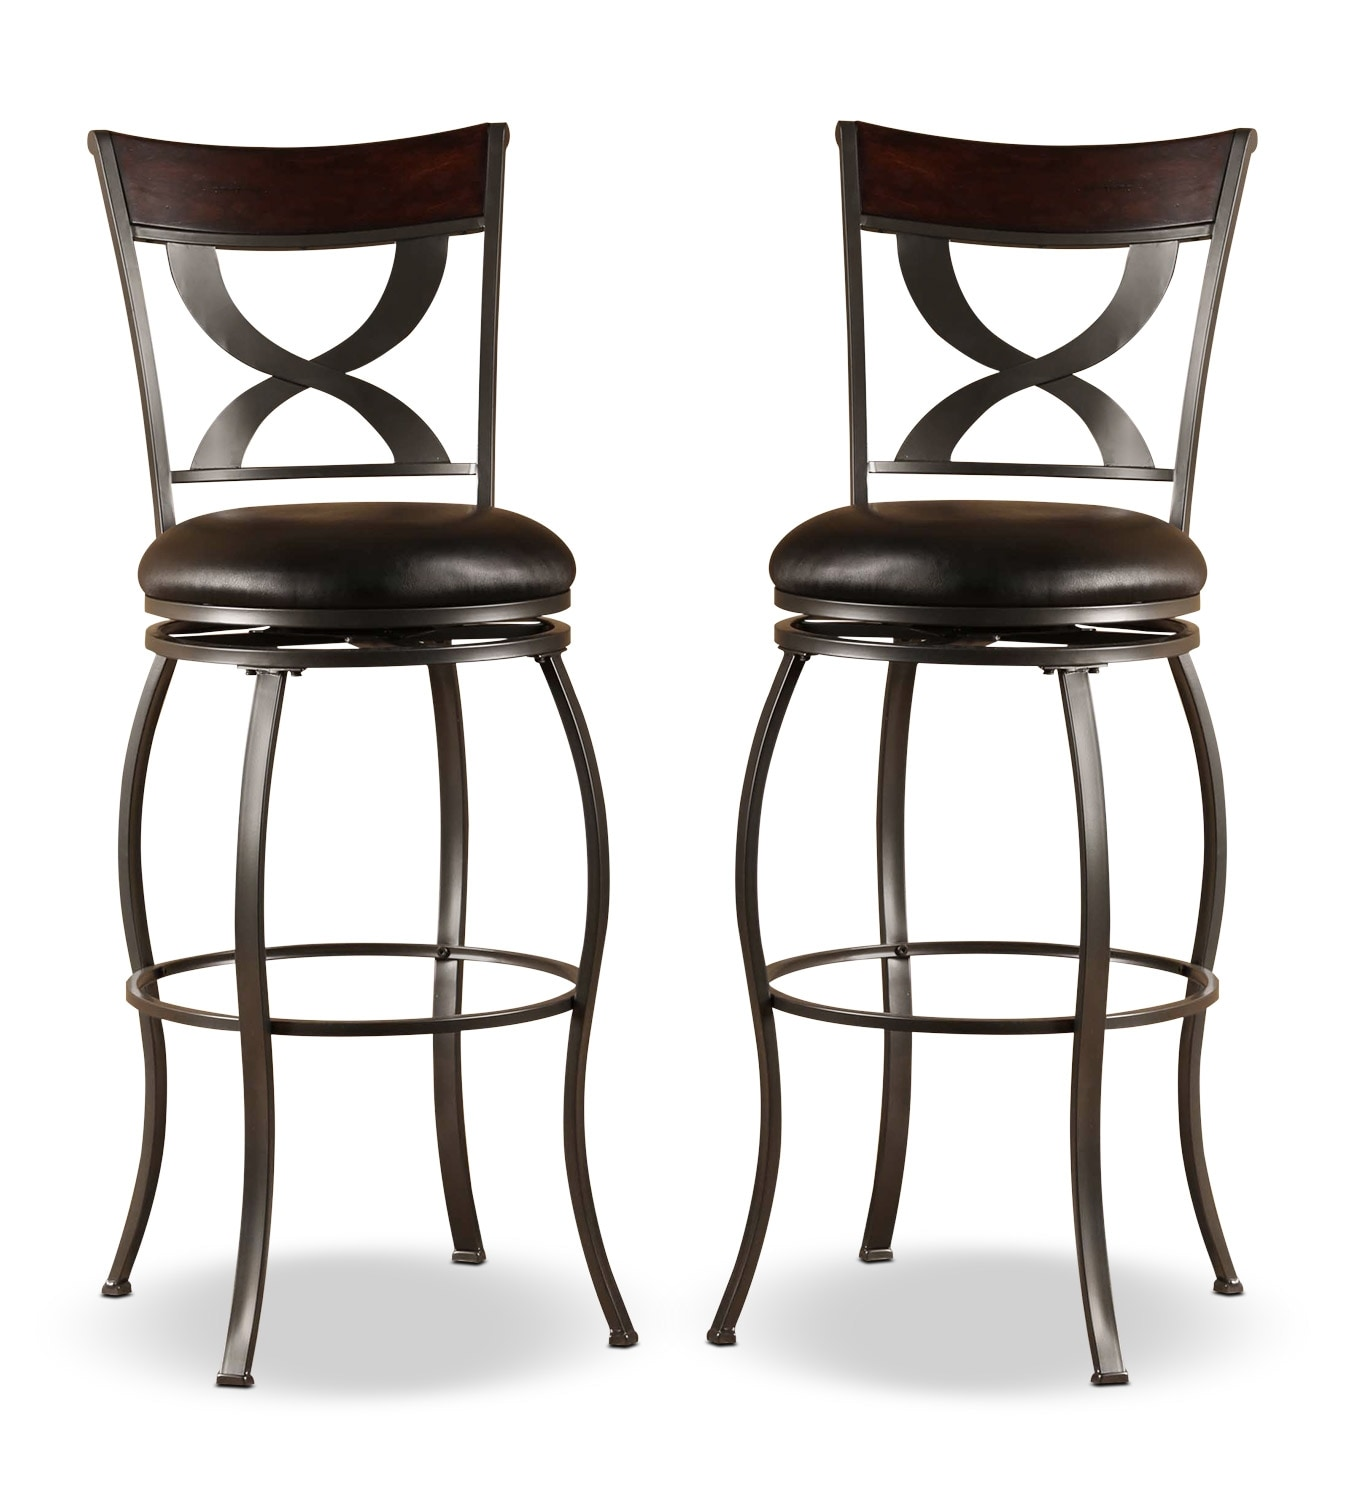 Stockport Counter-Height Swivel Stool – Set of 2